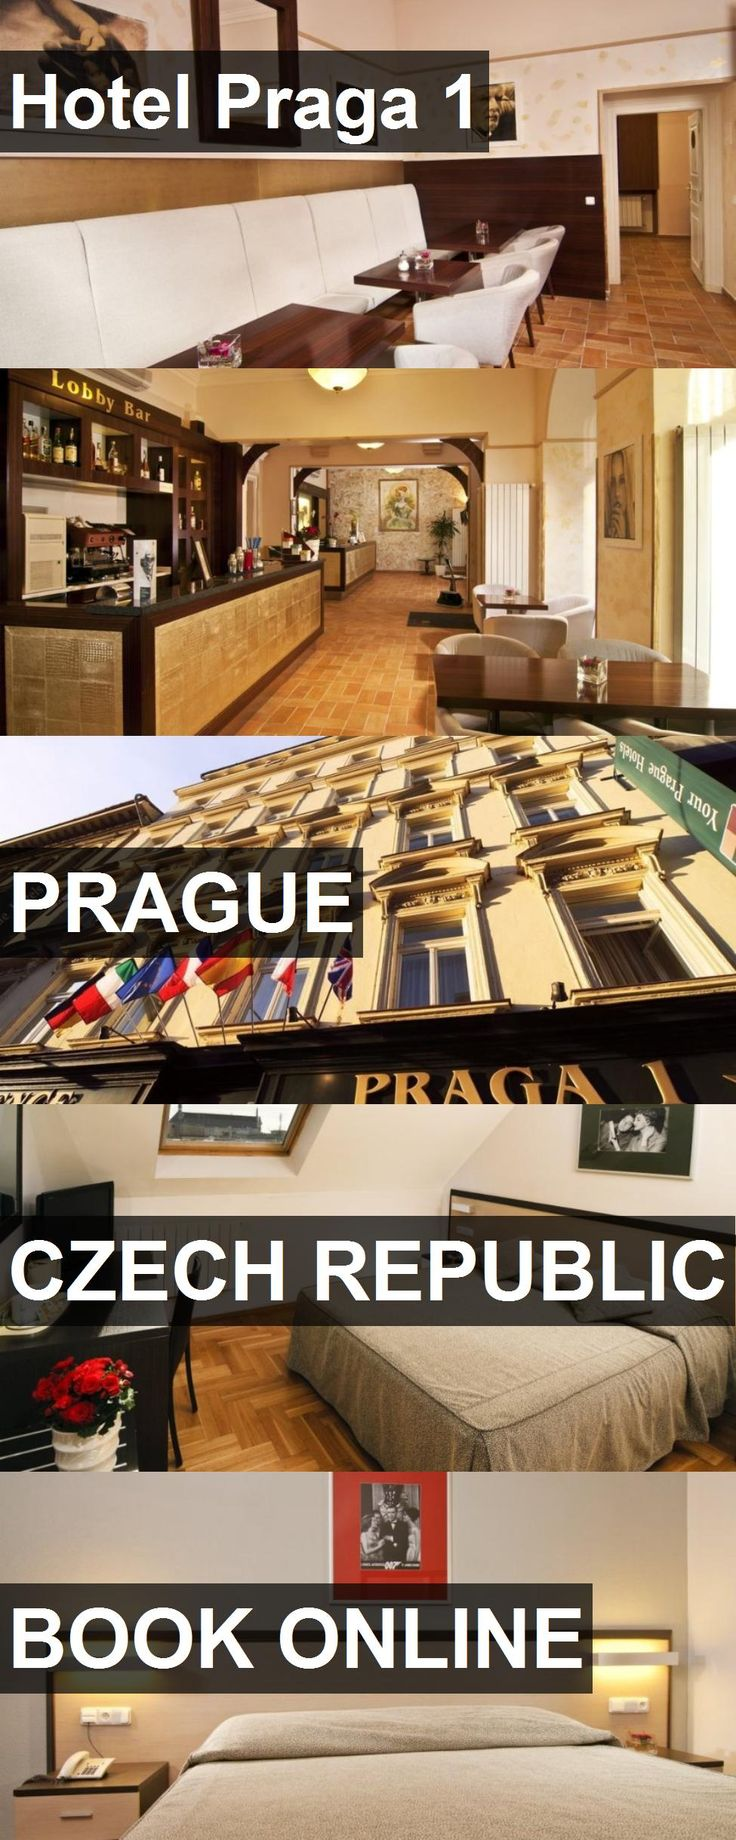 Hotel Praga 1 in Prague, Czech Republic. For more information, photos, reviews and best prices please follow the link. #CzechRepublic #Prague #travel #vacation #hotel